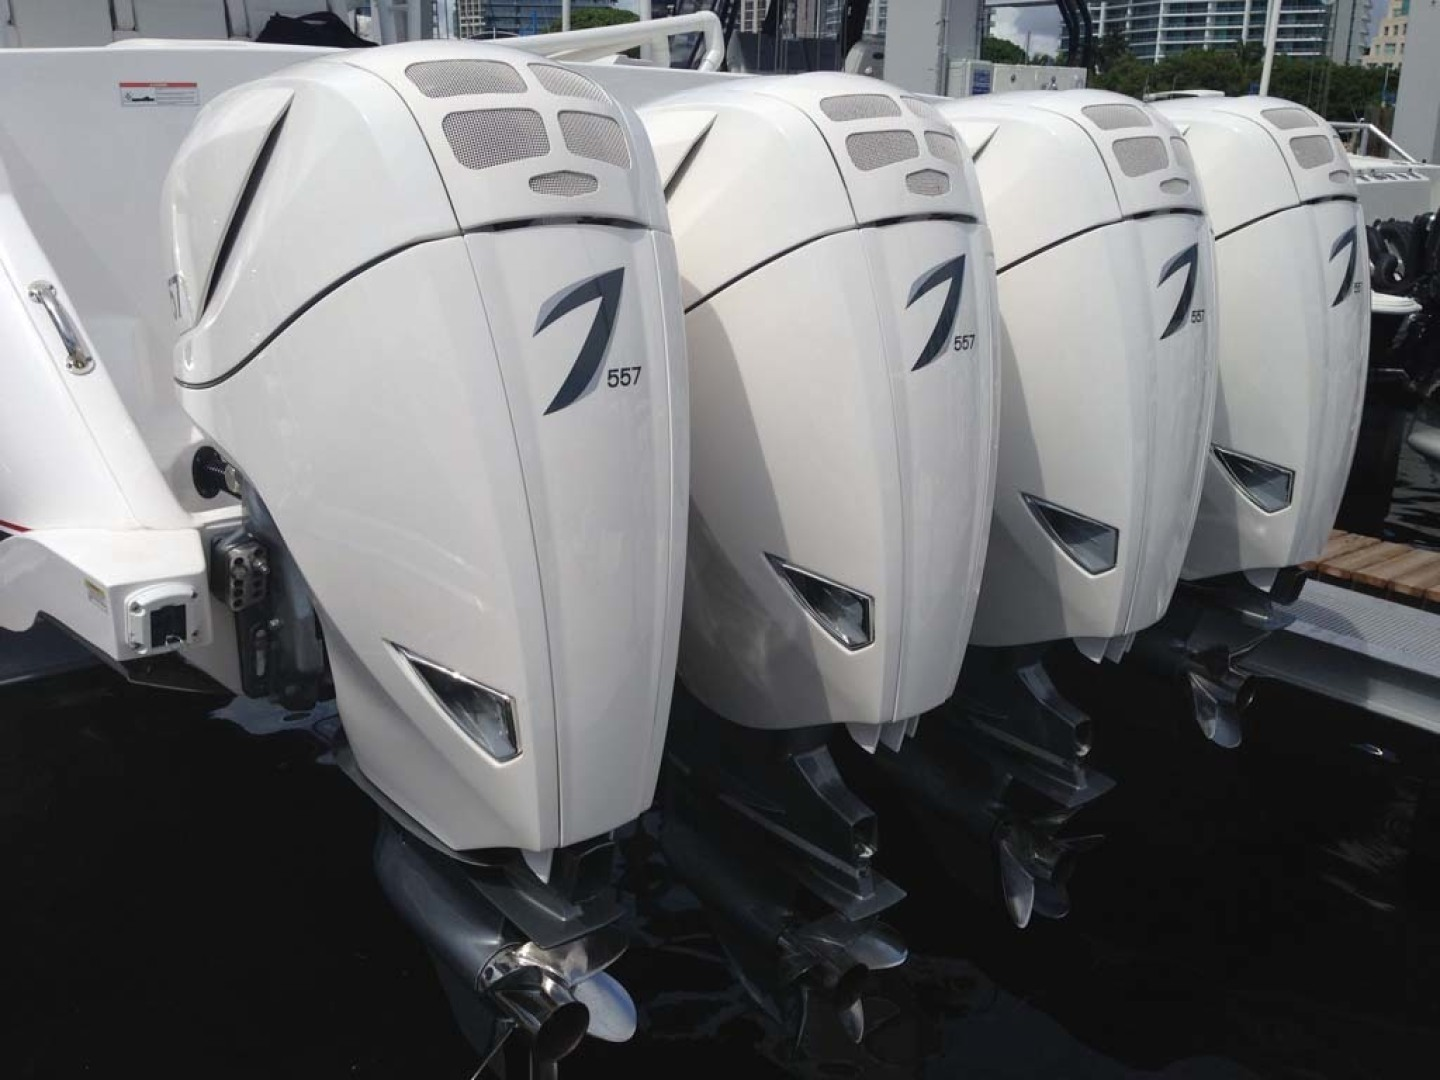 Intrepid-475 Panacea 2015-M.A.S. North Miami-Florida-United States-Outboards-1341790 | Thumbnail